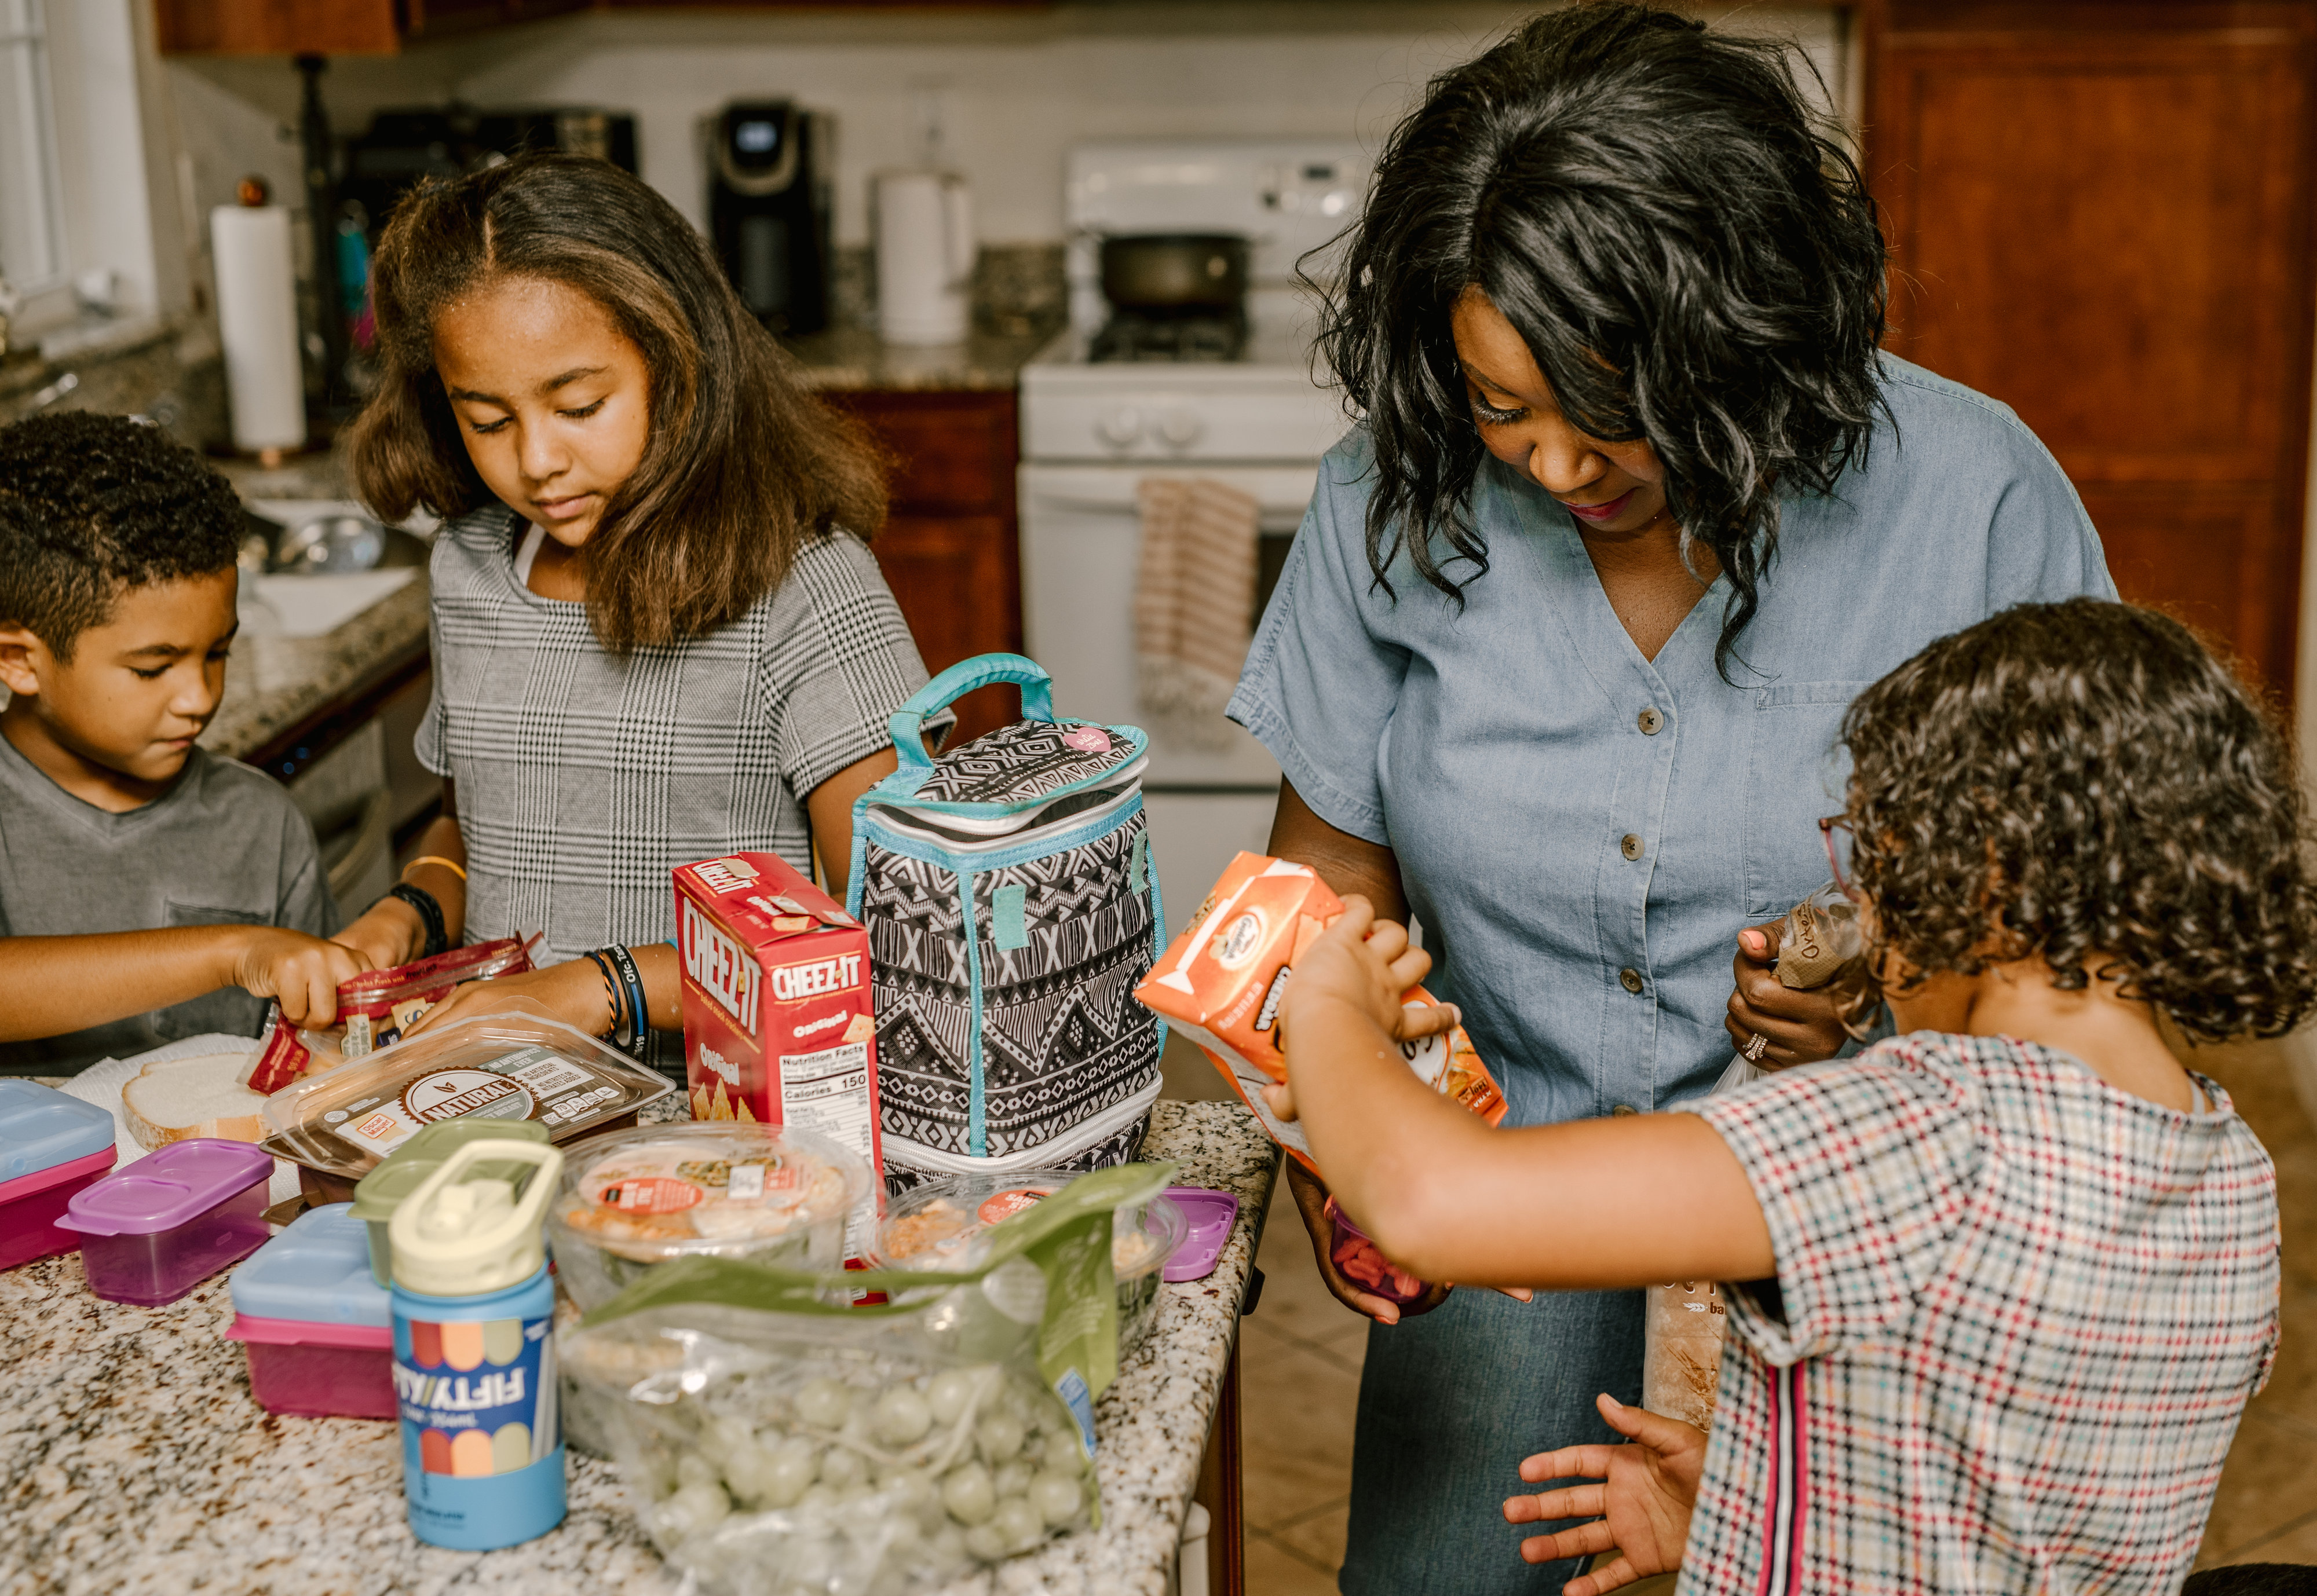 Ruthie Ridley Blog Lunches Made Easy With Walmart